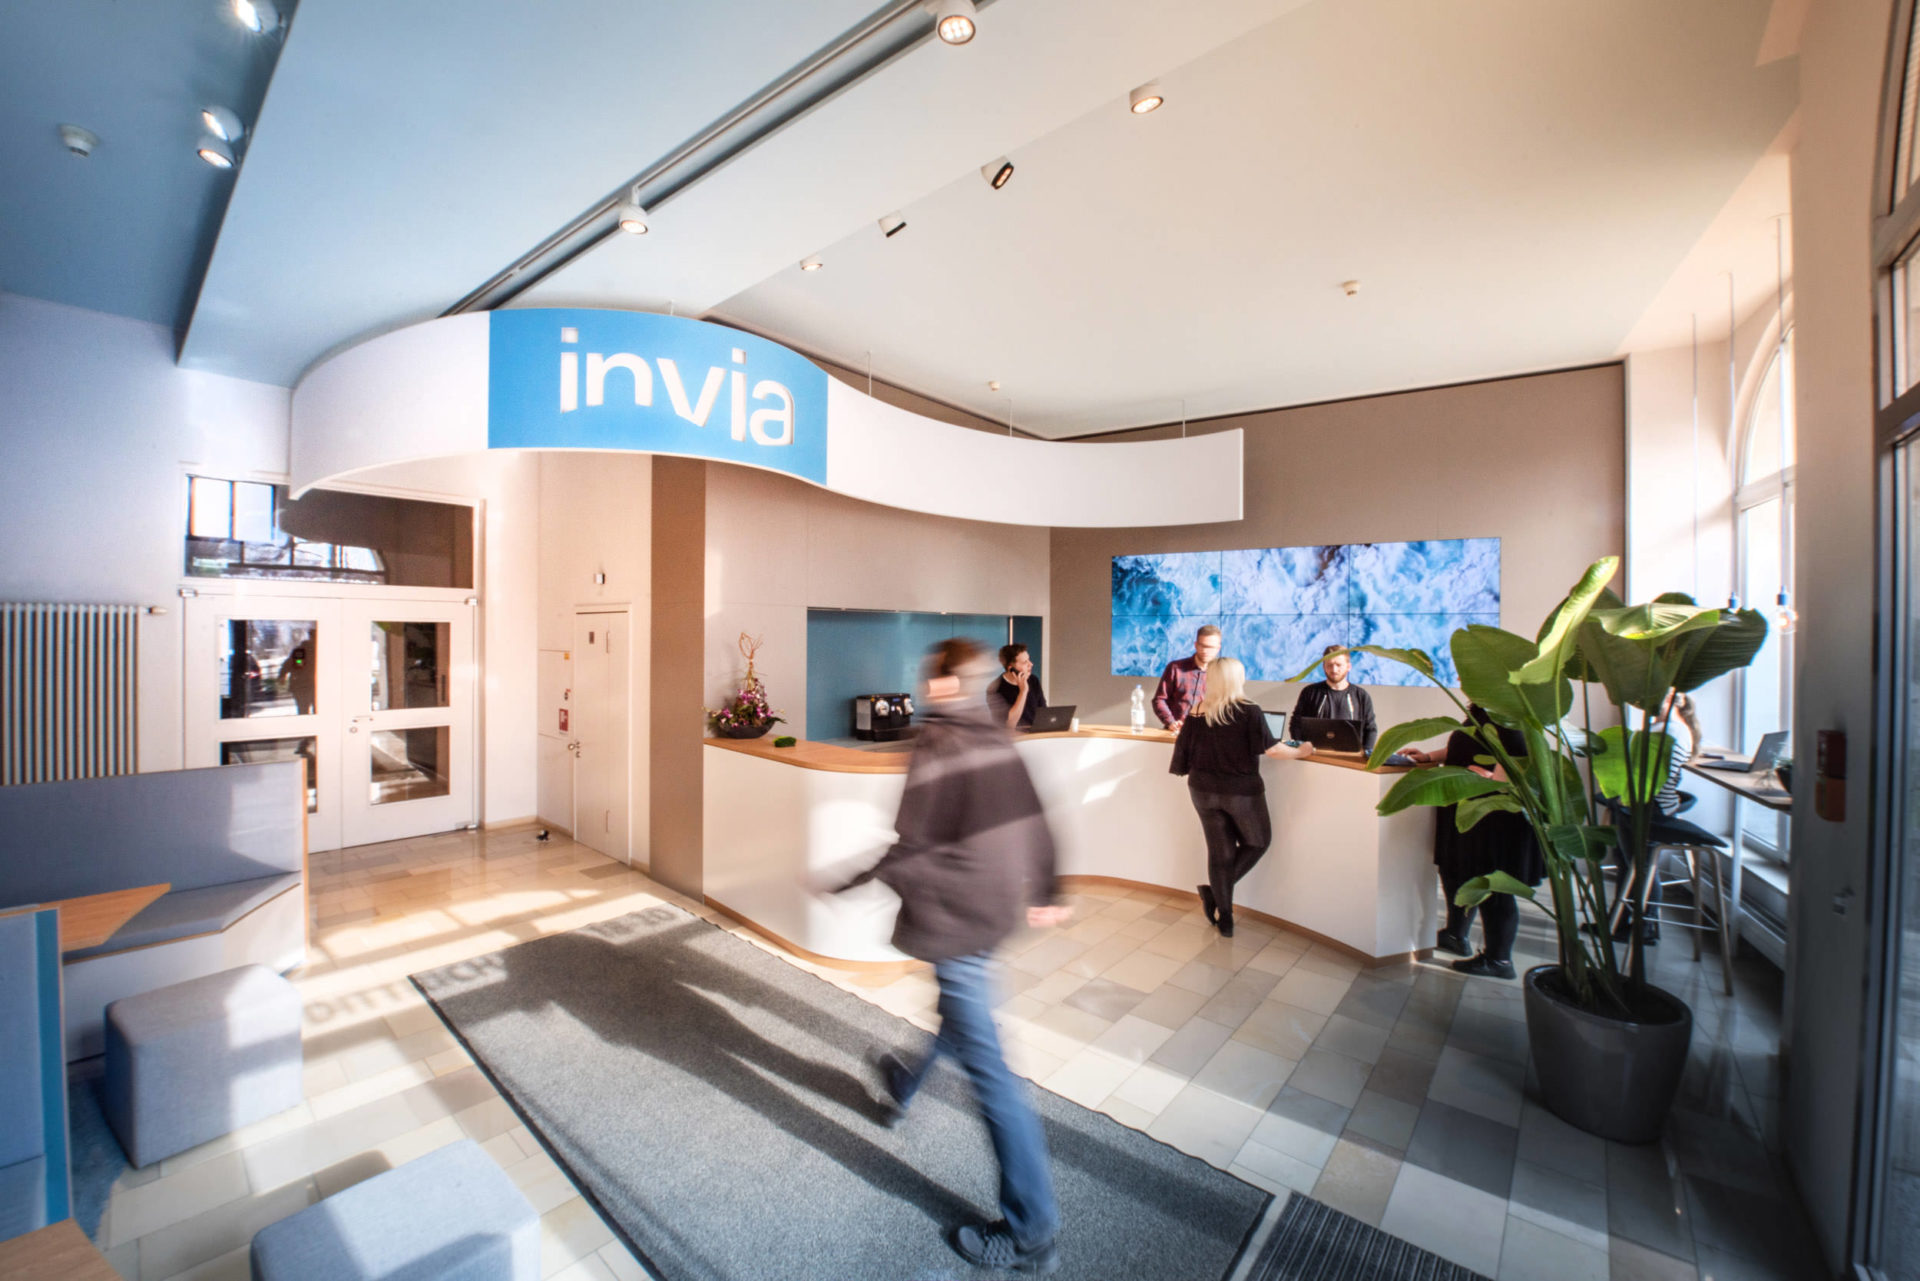 Invia Group